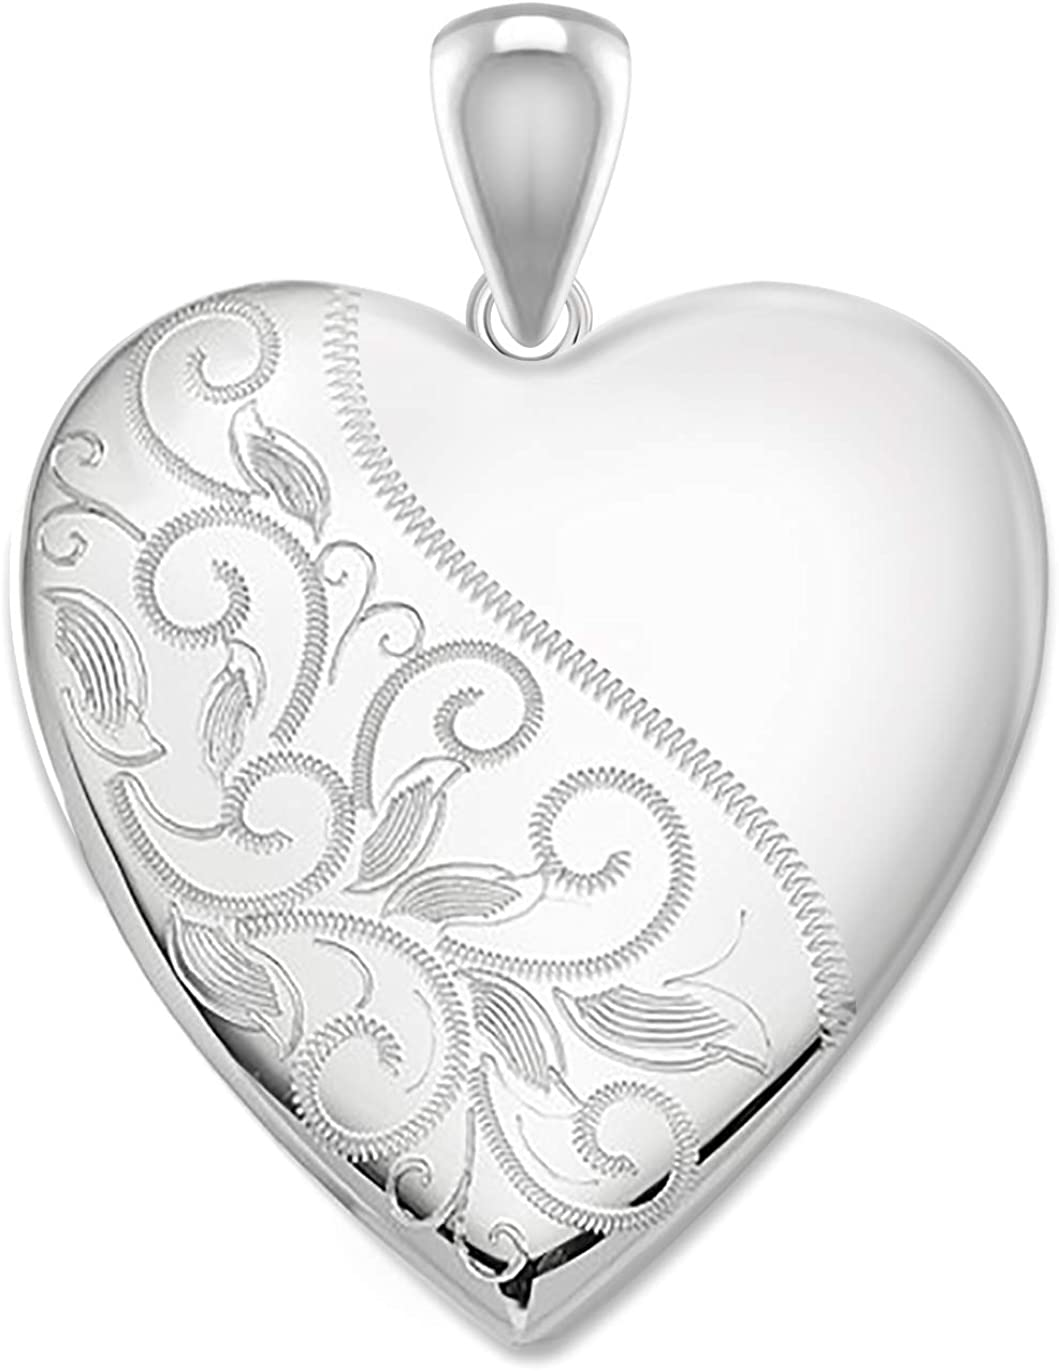 US Jewels And Gems Women's 1in 0.925 Sterling Silver Scrolled Ash Holder Heart Locket Pendant